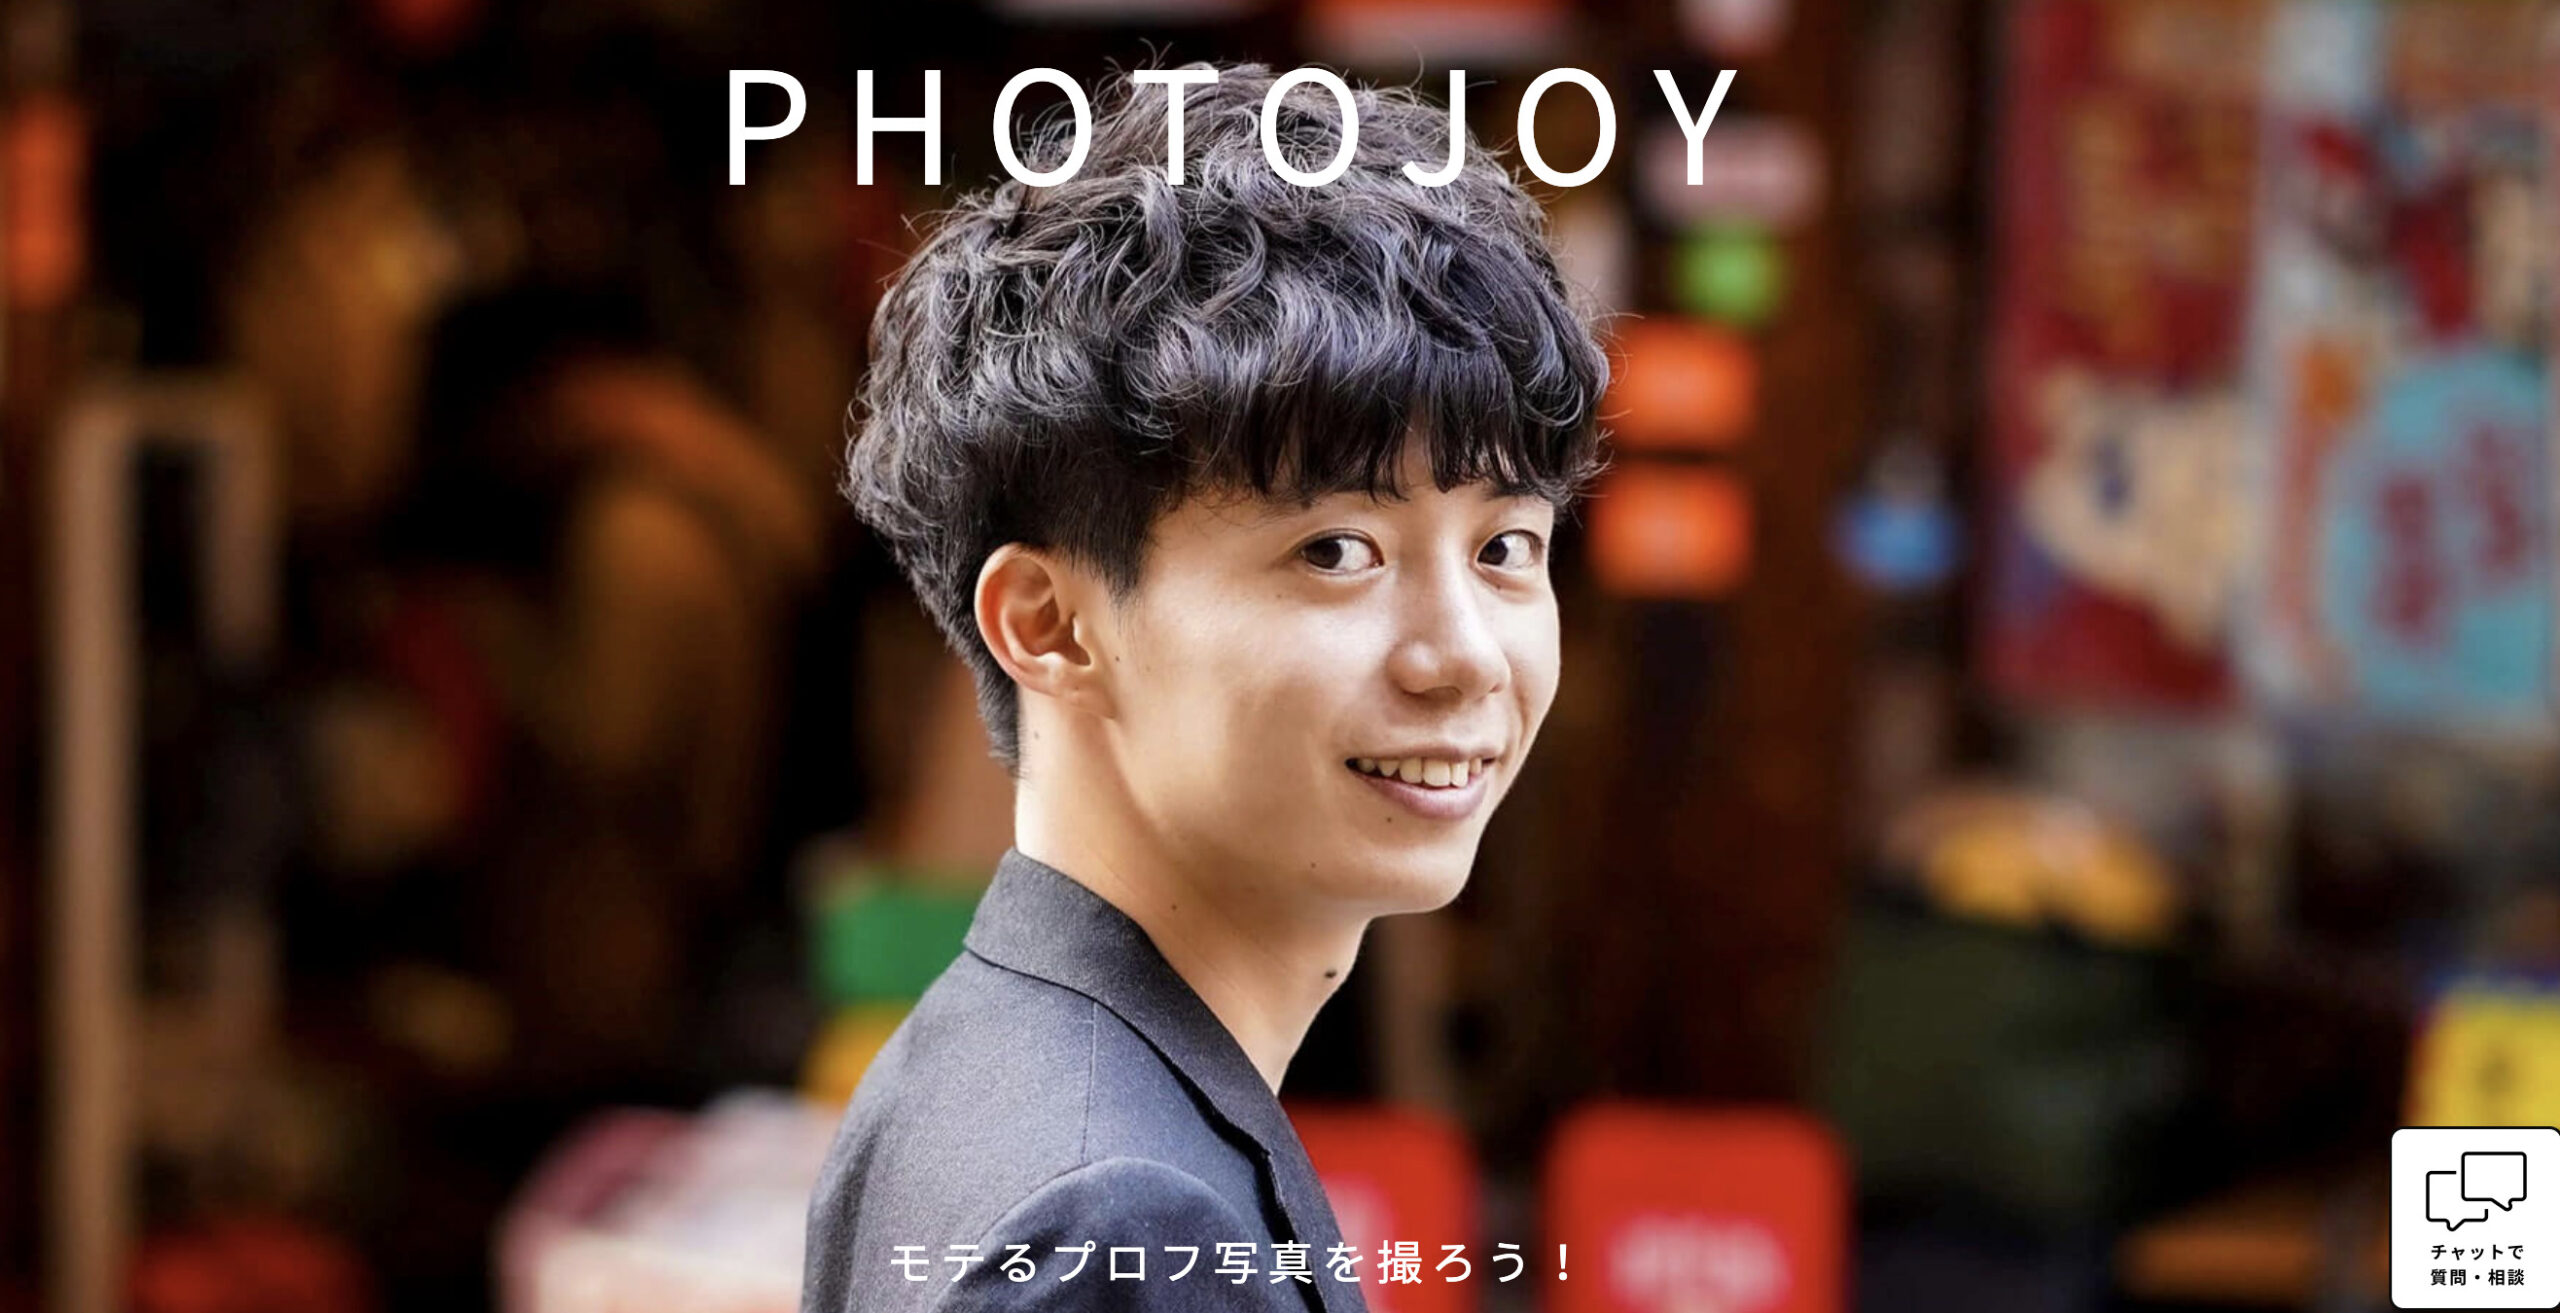 Photojoy とは